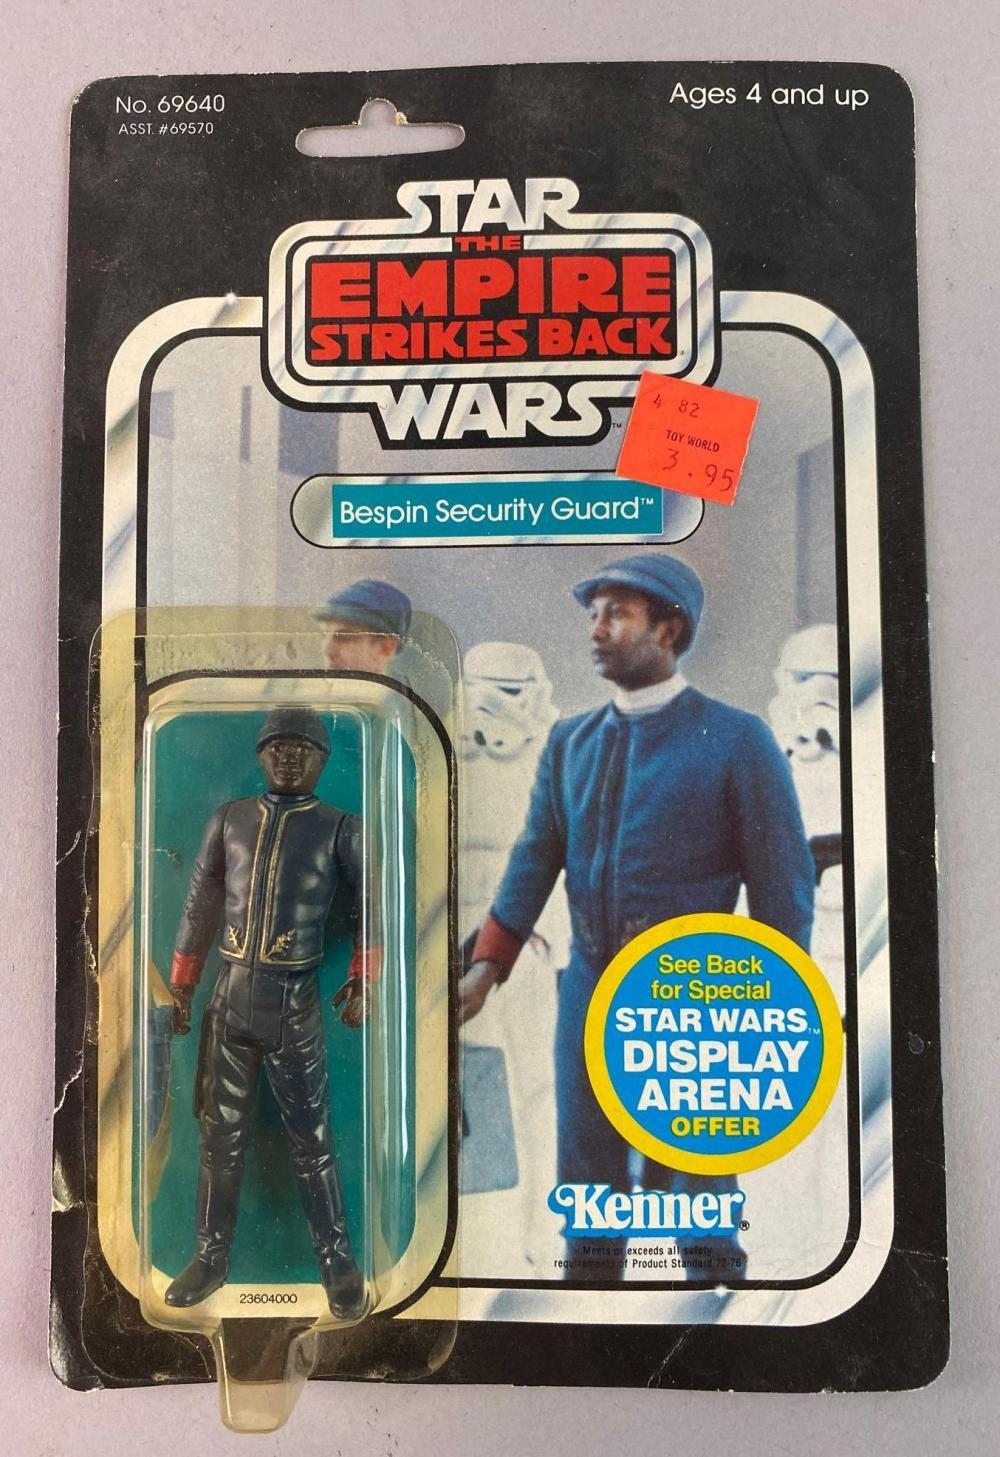 Kenner Star Wars ROTJ Black Bespin Security Guard Action Figure